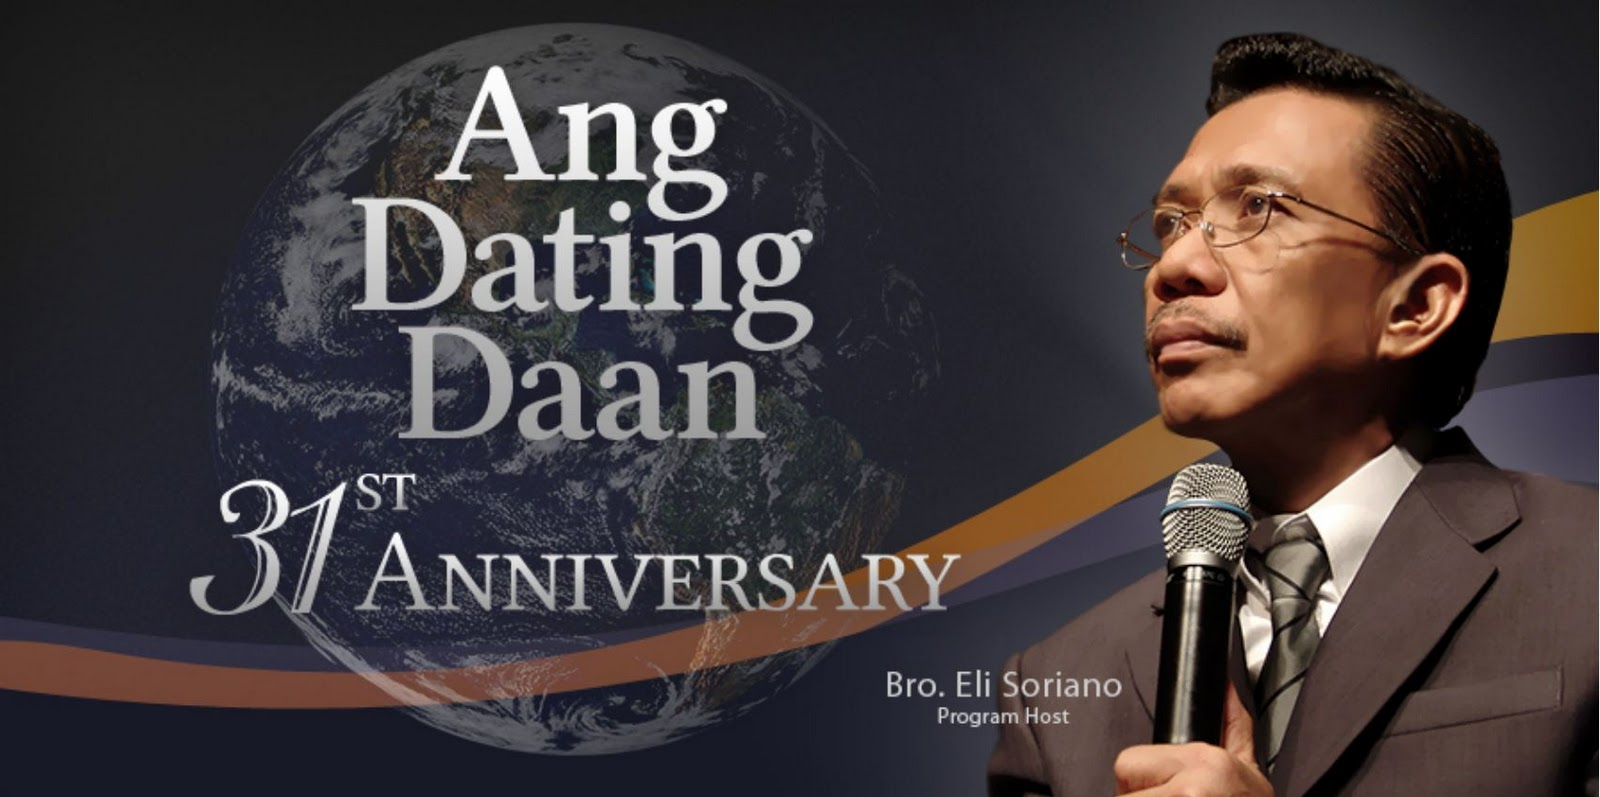 Dating daan beliefs